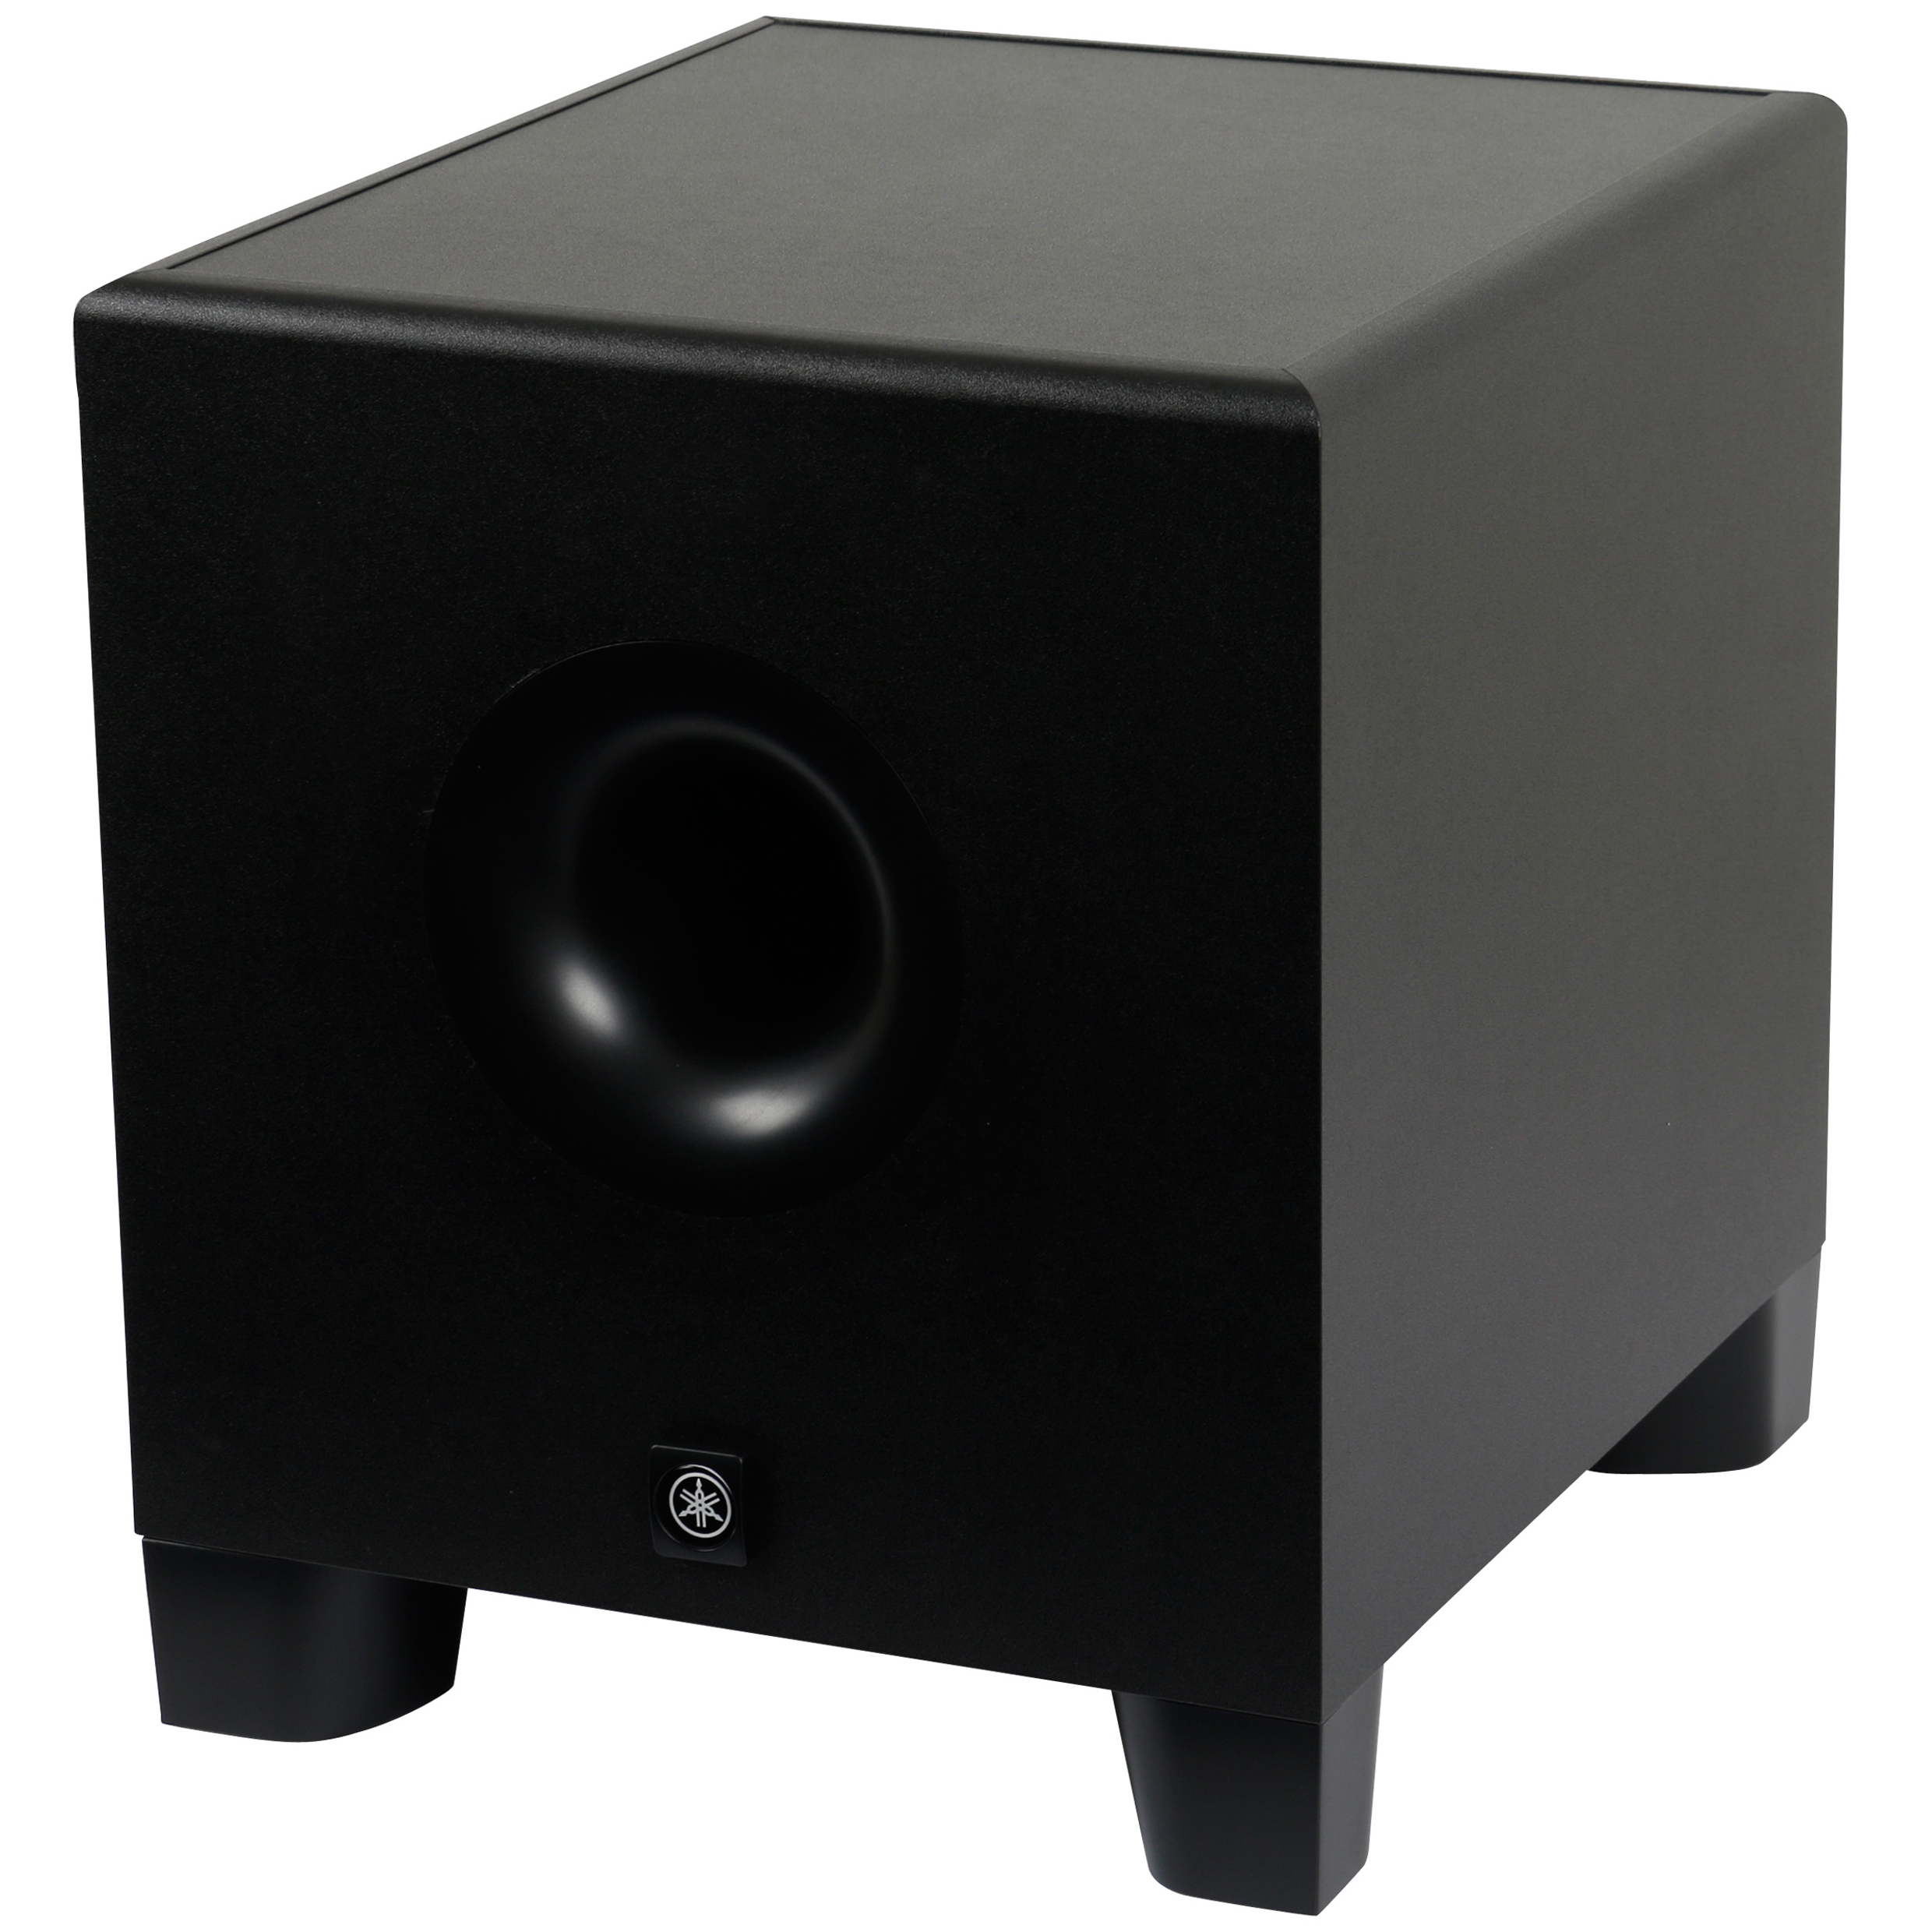 yamaha hs8s aktiv subwoofer kaufen bax shop. Black Bedroom Furniture Sets. Home Design Ideas